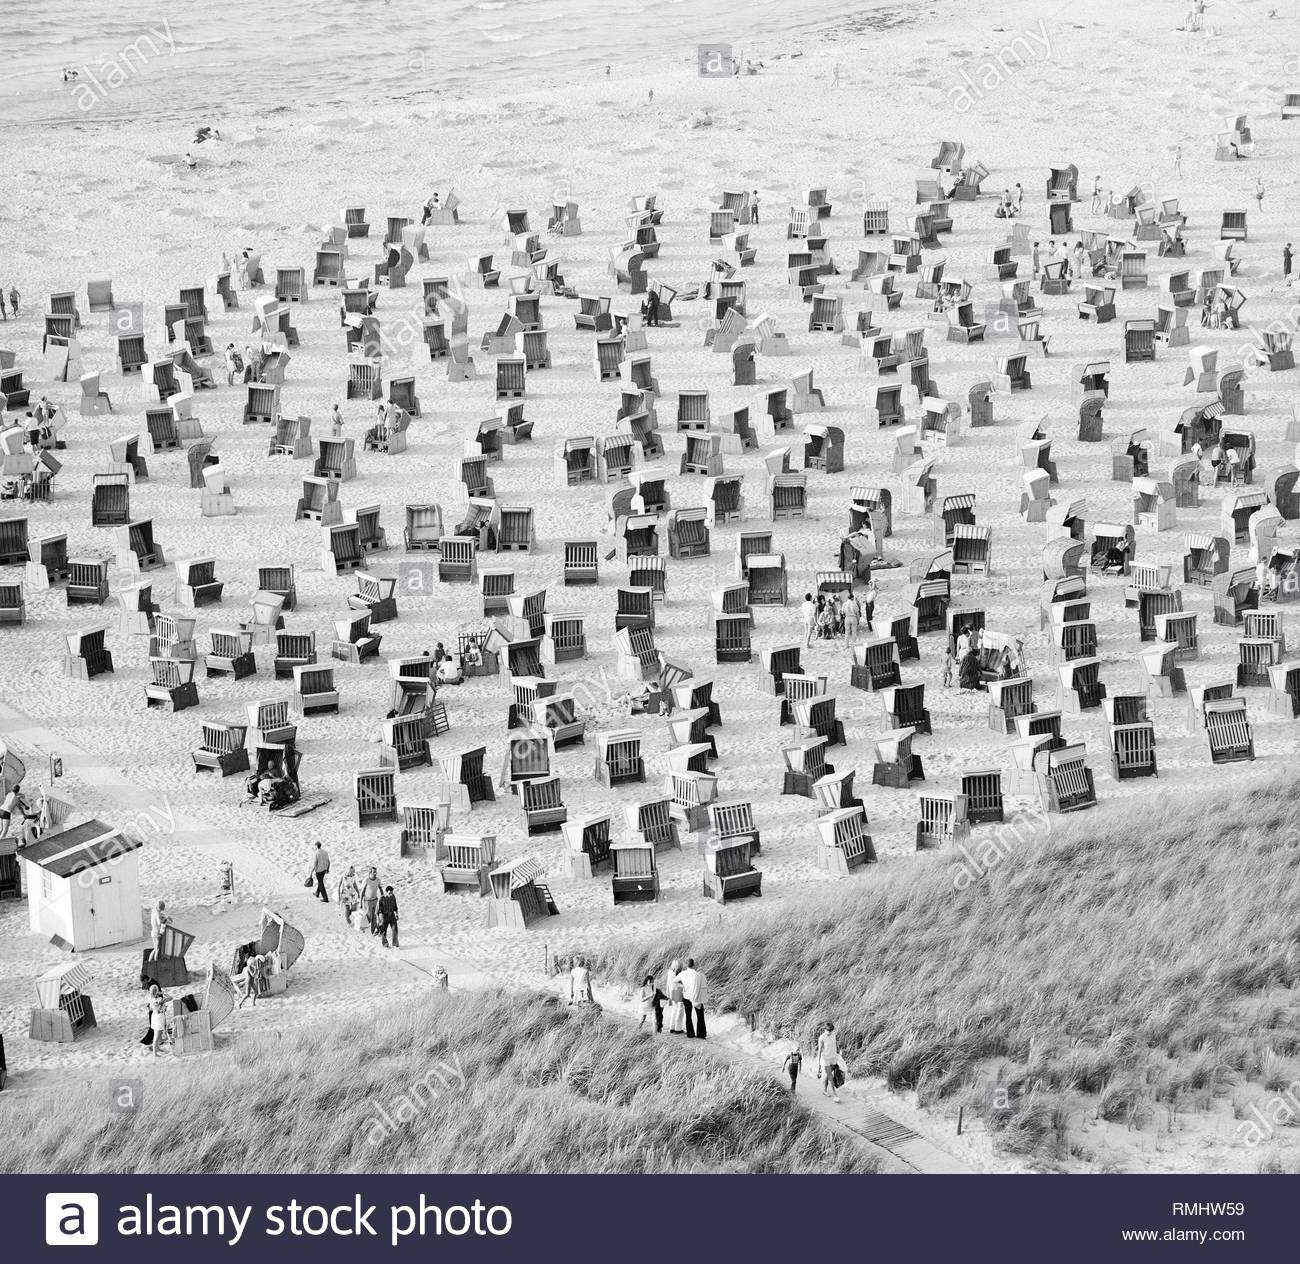 Beach baskets on the sand beach in the seaside resort Warnemuende in Rostock in the state Mecklenburg-West Pomerania on the territory of the former GDR, German Democratic Republic. - Stock Image